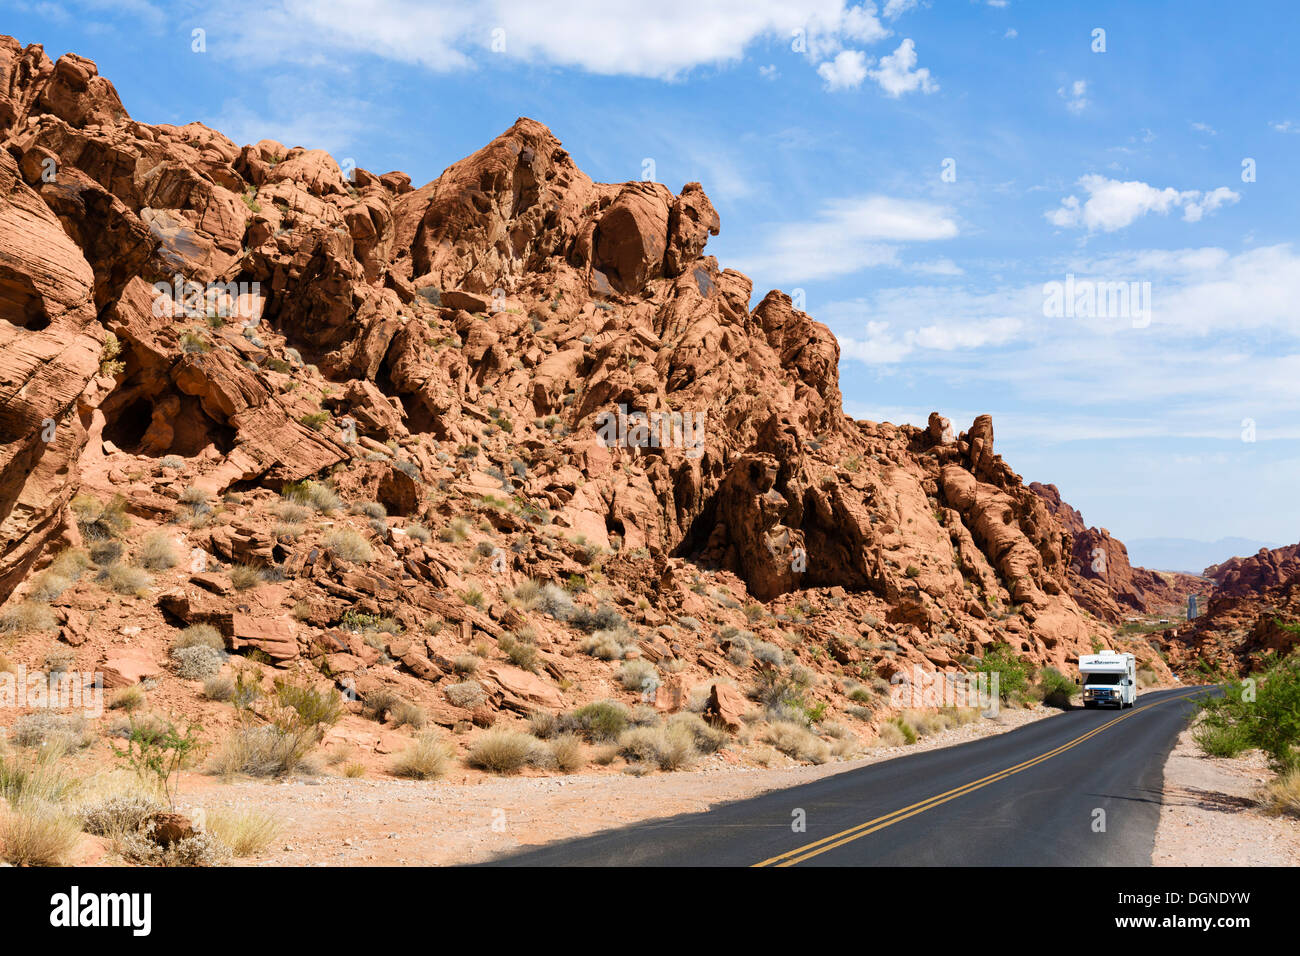 Camper van on Mouse's Tank Road, Valley of Fire State Park, north of Las Vegas, Nevada, USA - Stock Image